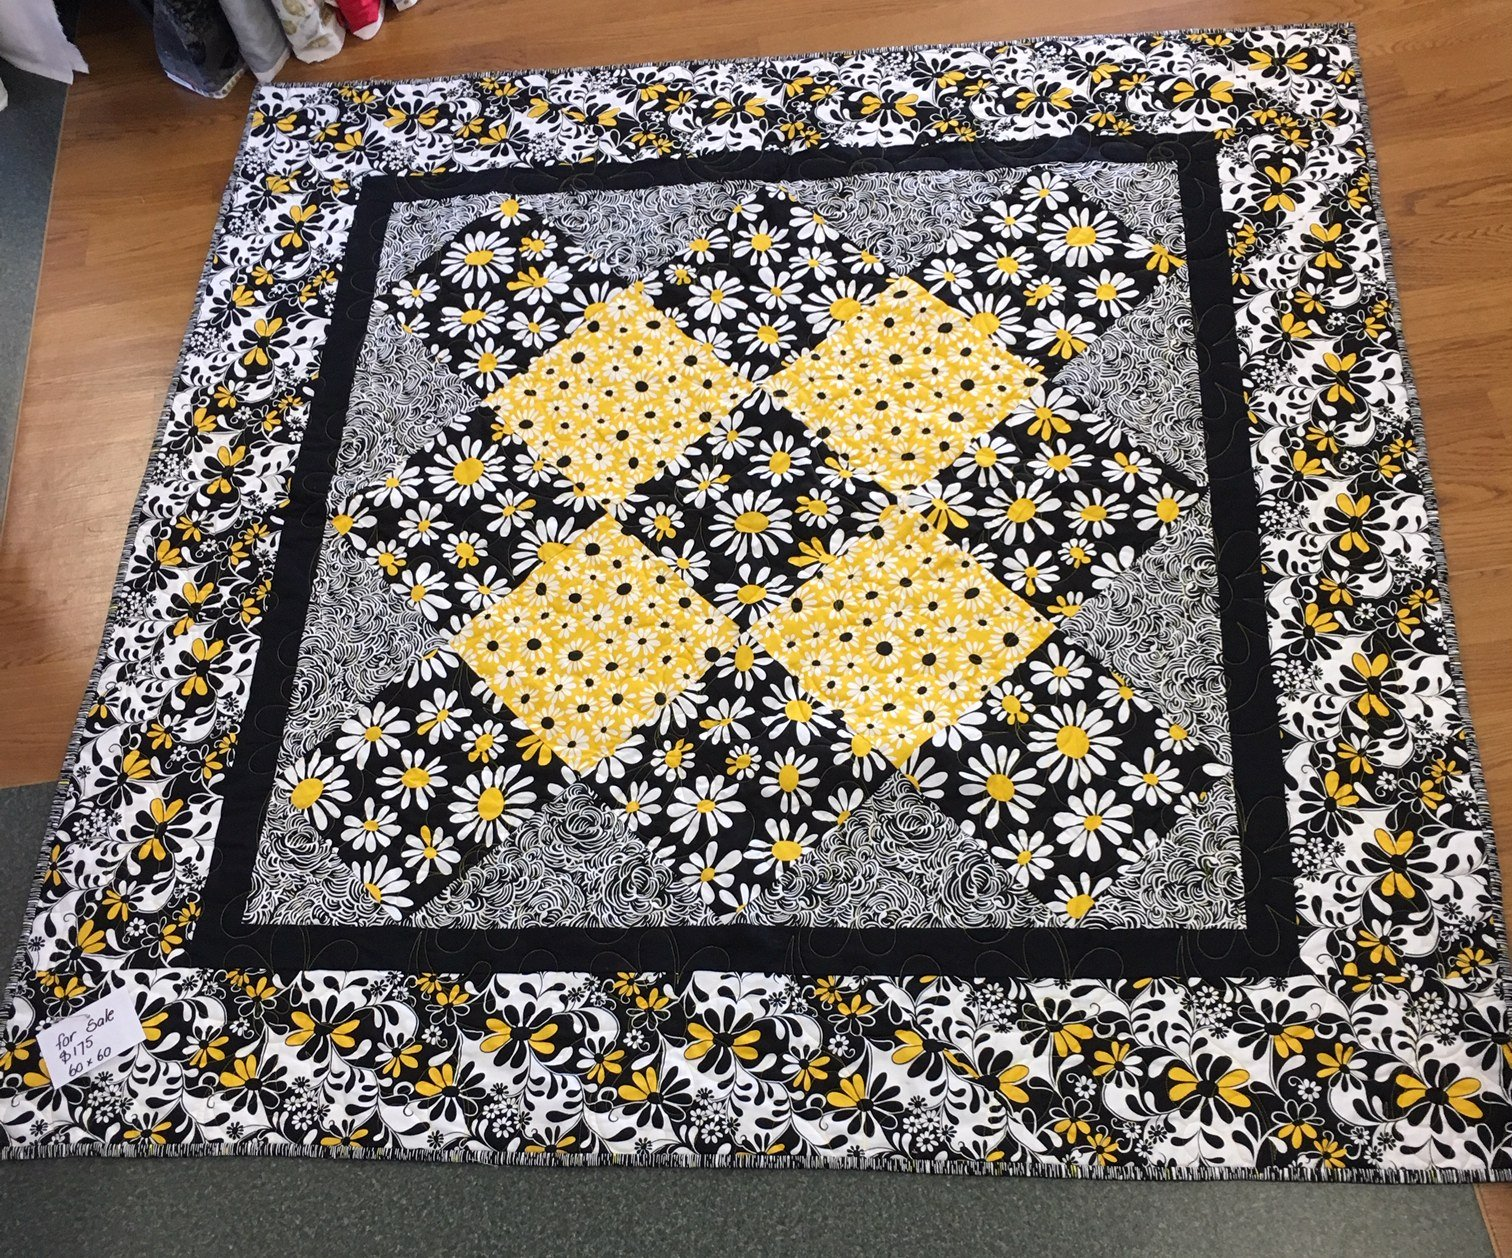 Black and yellow daisies